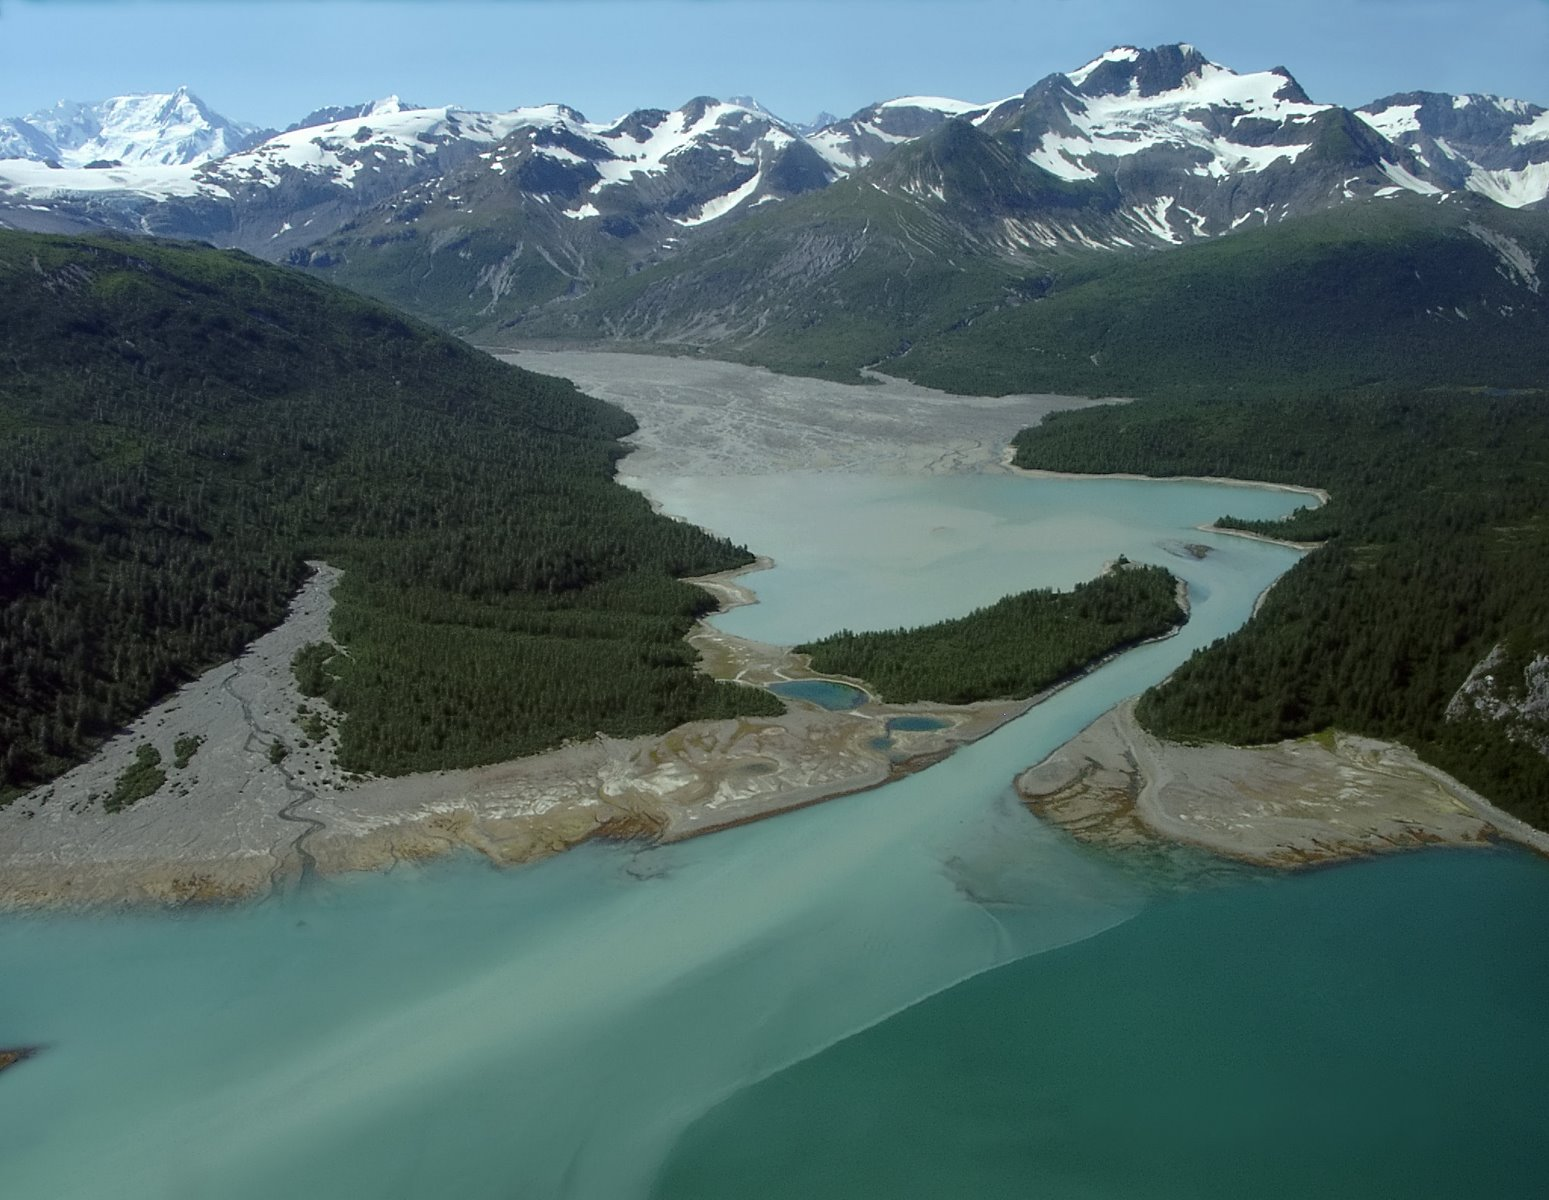 In 1928 the U.S. Navy flew a survey plane throughout Southeast Alaska taking aerial photos.  Those photos show that most of the bay shown in the middle of this image didn't exist back then – it was beneath the ice terminus of the Hugh Miller Glacier, which has now retreated back around the corner to the left.